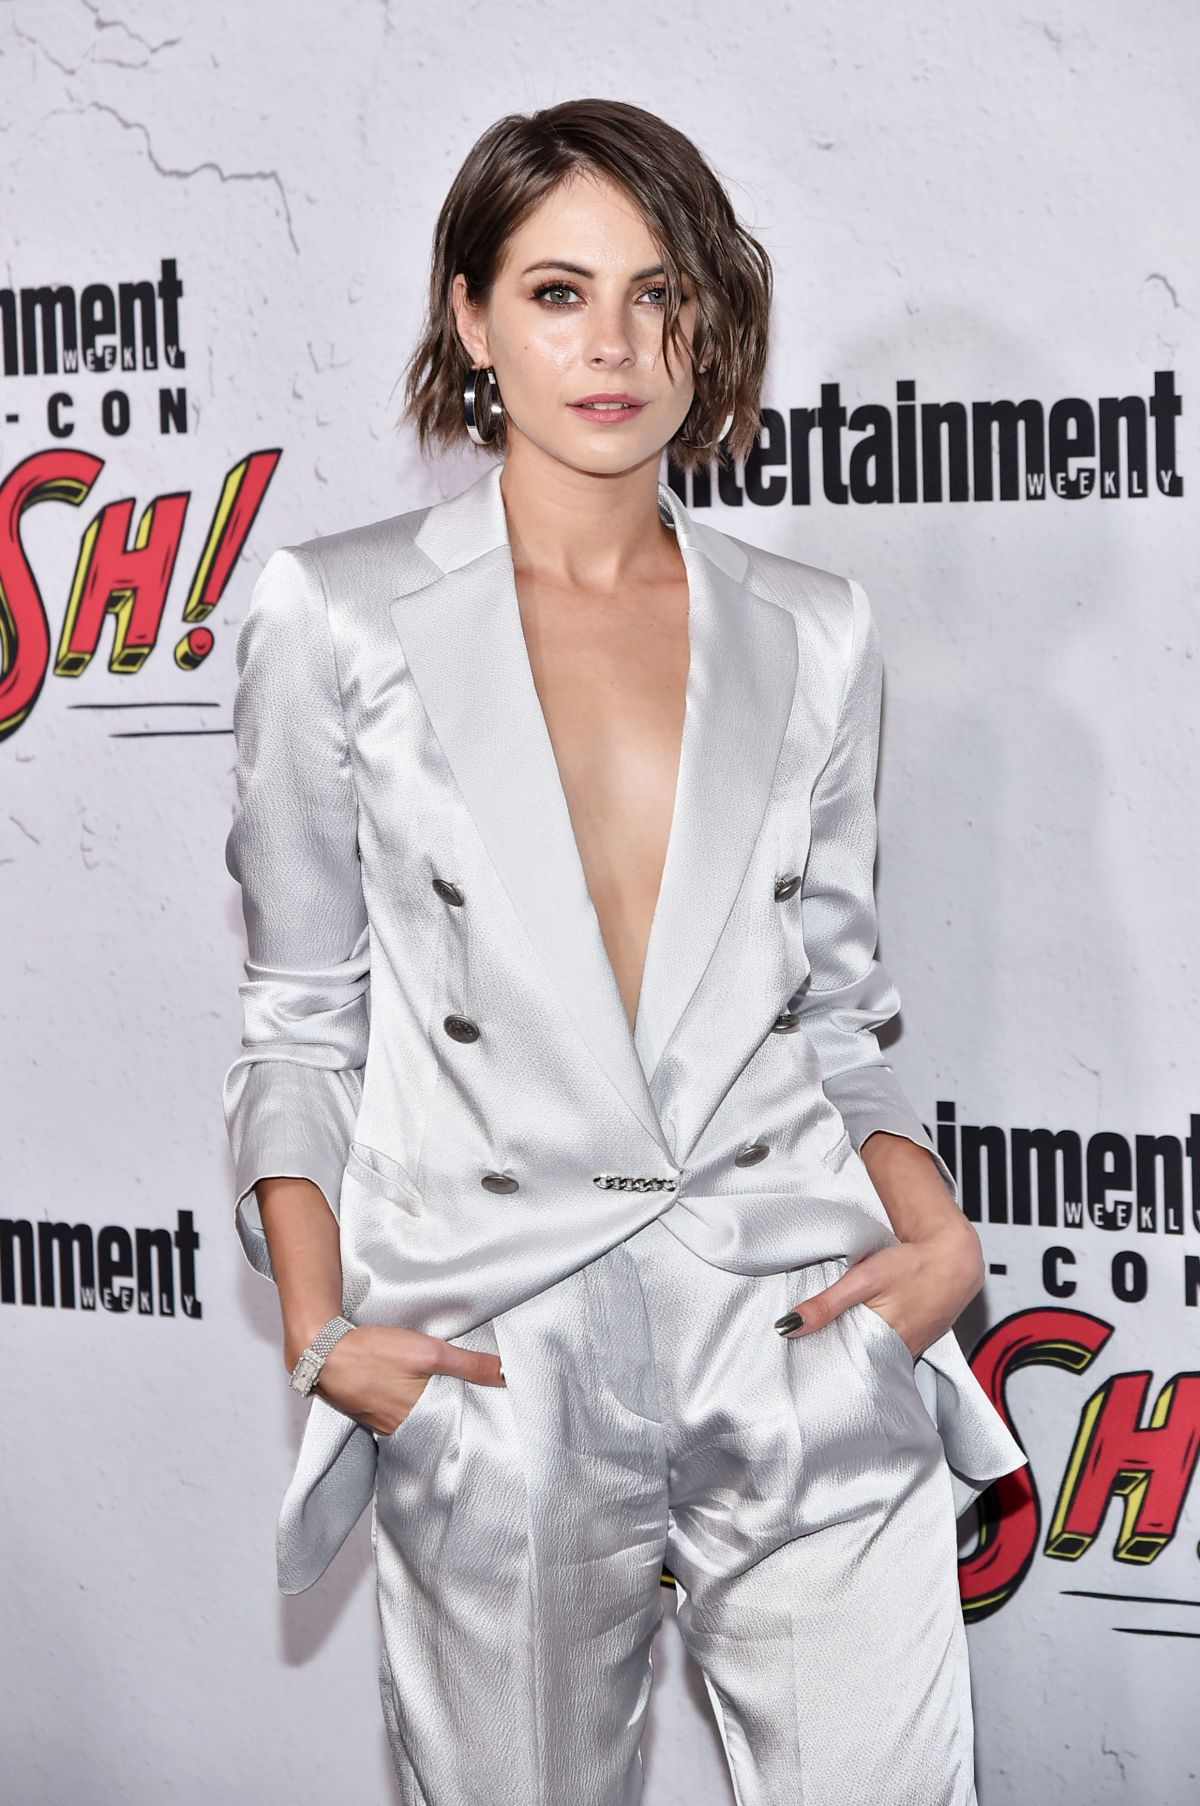 WILLA HOLLAND at Entertainment Weekly's Comic-con Party in San Diego 07/22/2017